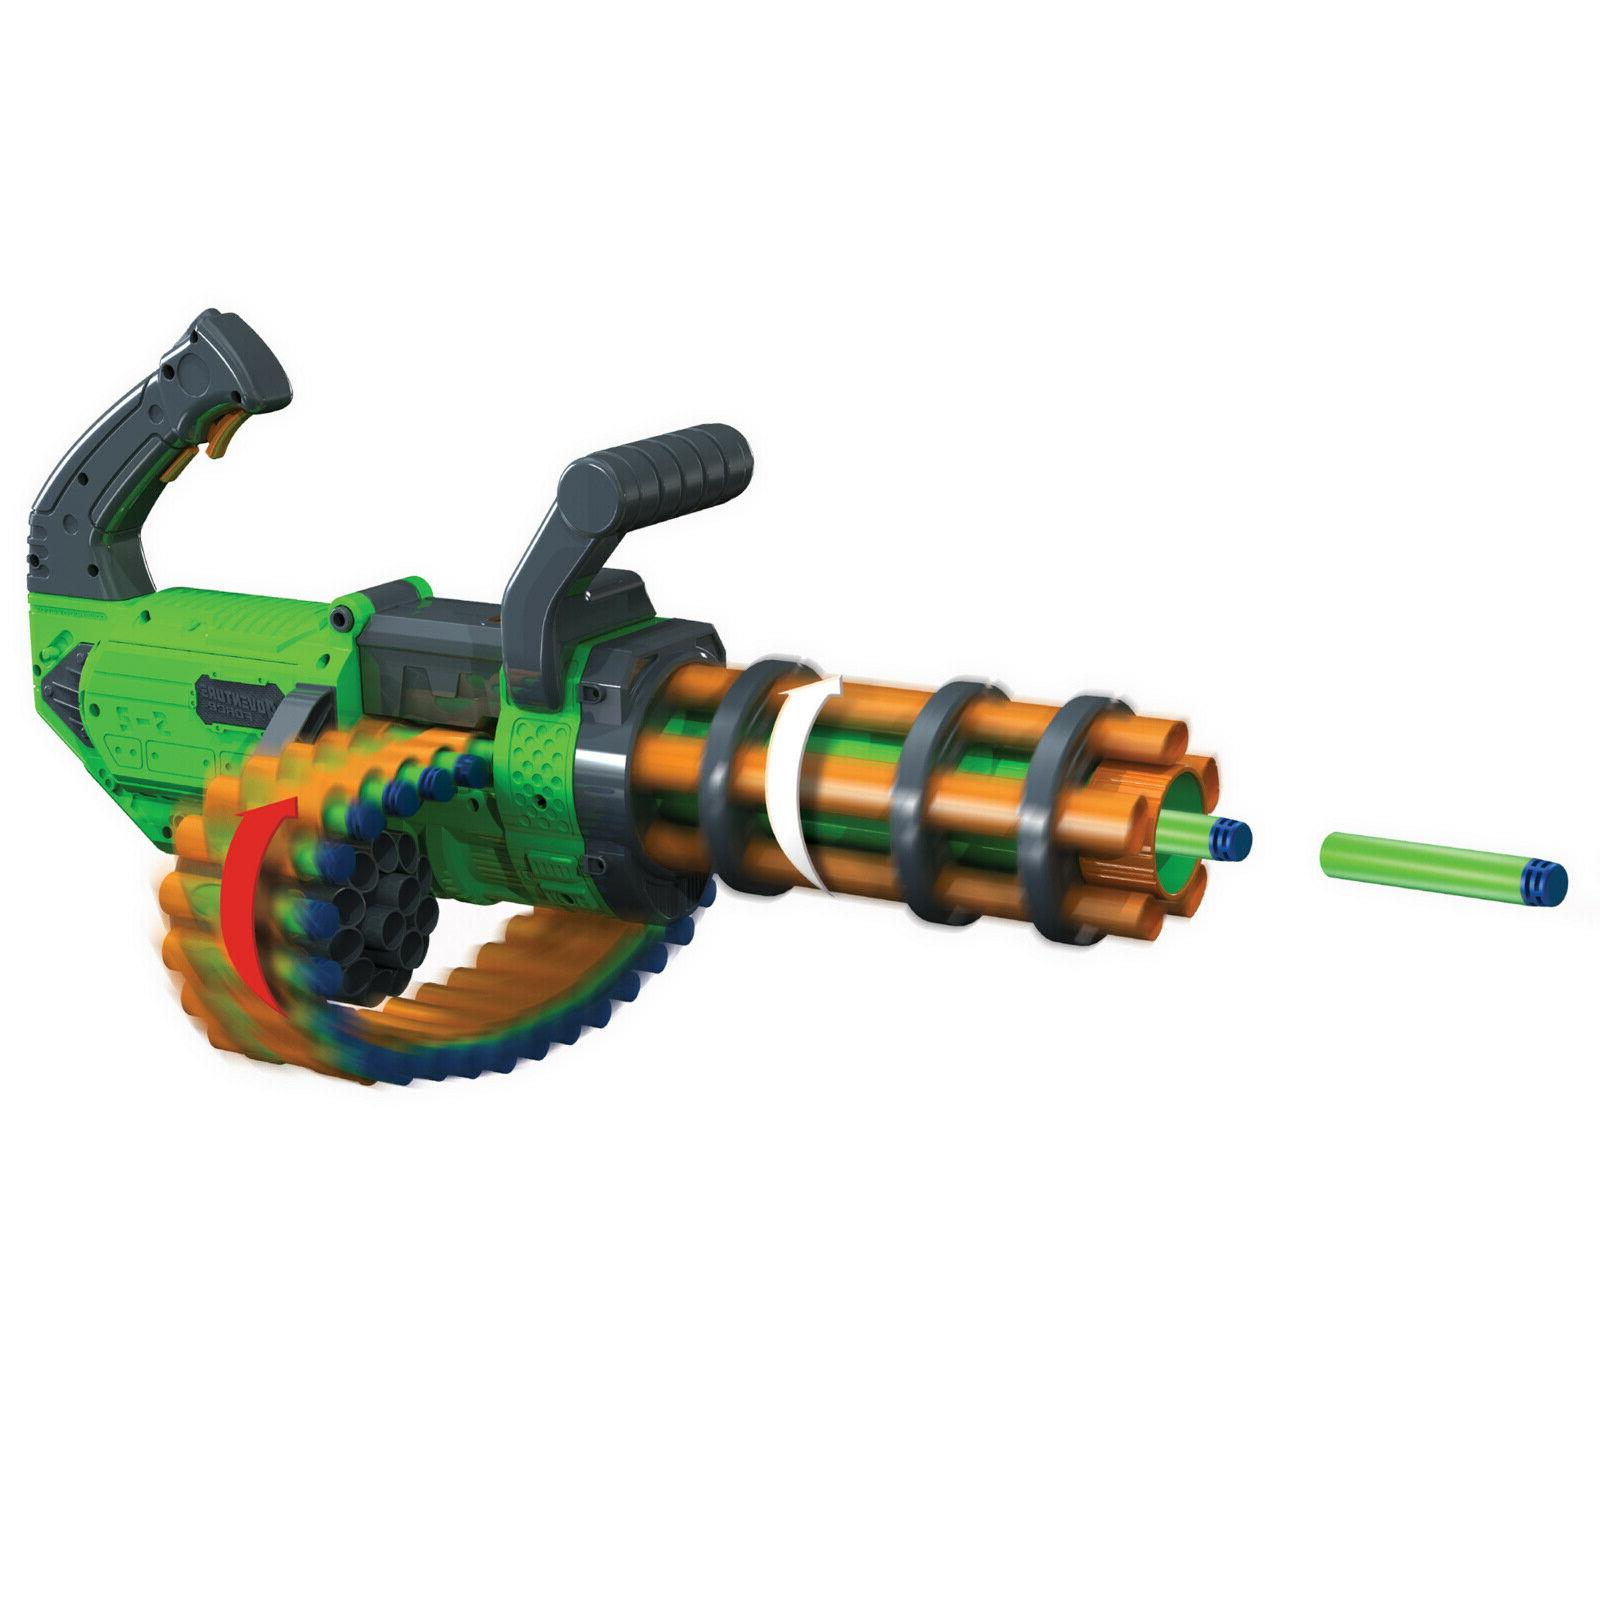 Gatling Automatic Blaster For Kids